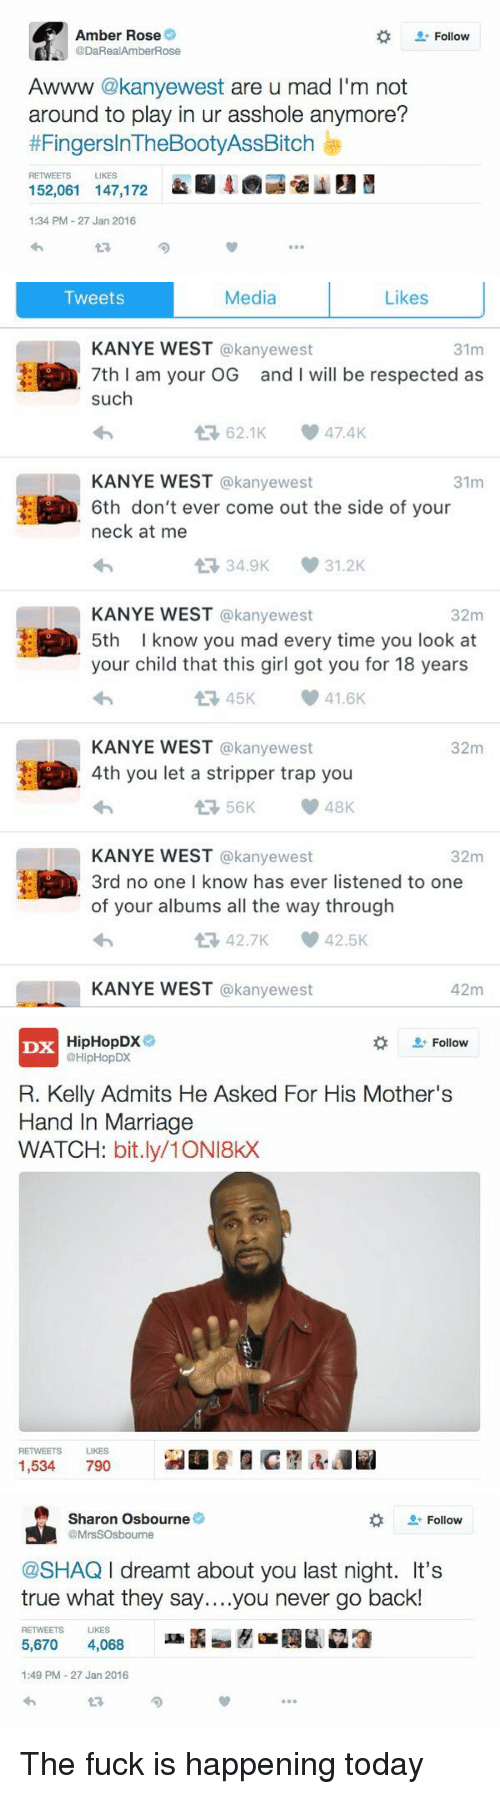 Amber Rose, Blackpeopletwitter, and Fucking: Amber Rose  @Da Real Amber Rose  Awww  kanye west  are u mad I'm not  around to play in ur asshole anymore?  thFingerslnTheBootyAssBitch  RETWEETS LIKES  152,061 147,172  1:34 PM 27 Jan 2016  Follow   Media  Likes  Tweets  KANYE WEST  akanyewest  31m  7th I am your OG and will be respected as  such  62.1K 47.4K  KANYE WEST  @kanyewest  31m  6th don't ever come out the side of your  neck at me  34.9K 31.2K  t KANYE WEST  @kanyewest  32m  5th I know you mad every time you look at  your child that this girl got you for 18 years  41.6K  KANYE WEST  @kanyewest  32m  4th you let a stripper trap you  56K 48K  KANYE WEST  @kanyewest  32m  3rd no one I know has ever listened to one  of your albums all the way through  42.7K 42.5K  t KANYE WEST  akanyewest  42m   HipHopDX  Follow  DX  @HipHopDX  R. Kelly Admits He Asked For His Mother's  Hand In Marriage  WATCH  bit.ly/1 ONI8kX  RETWEETS LIKES  1,534  7900   Sharon Osbourne  Follow  @MrsSOsbourne  @SHAQ l dreamt about you last night. It's  true what they say....you never go back!  RETWEETS LIKES  5,670 4,068  1:49 PM 27 Jan 2016 The fuck is happening today